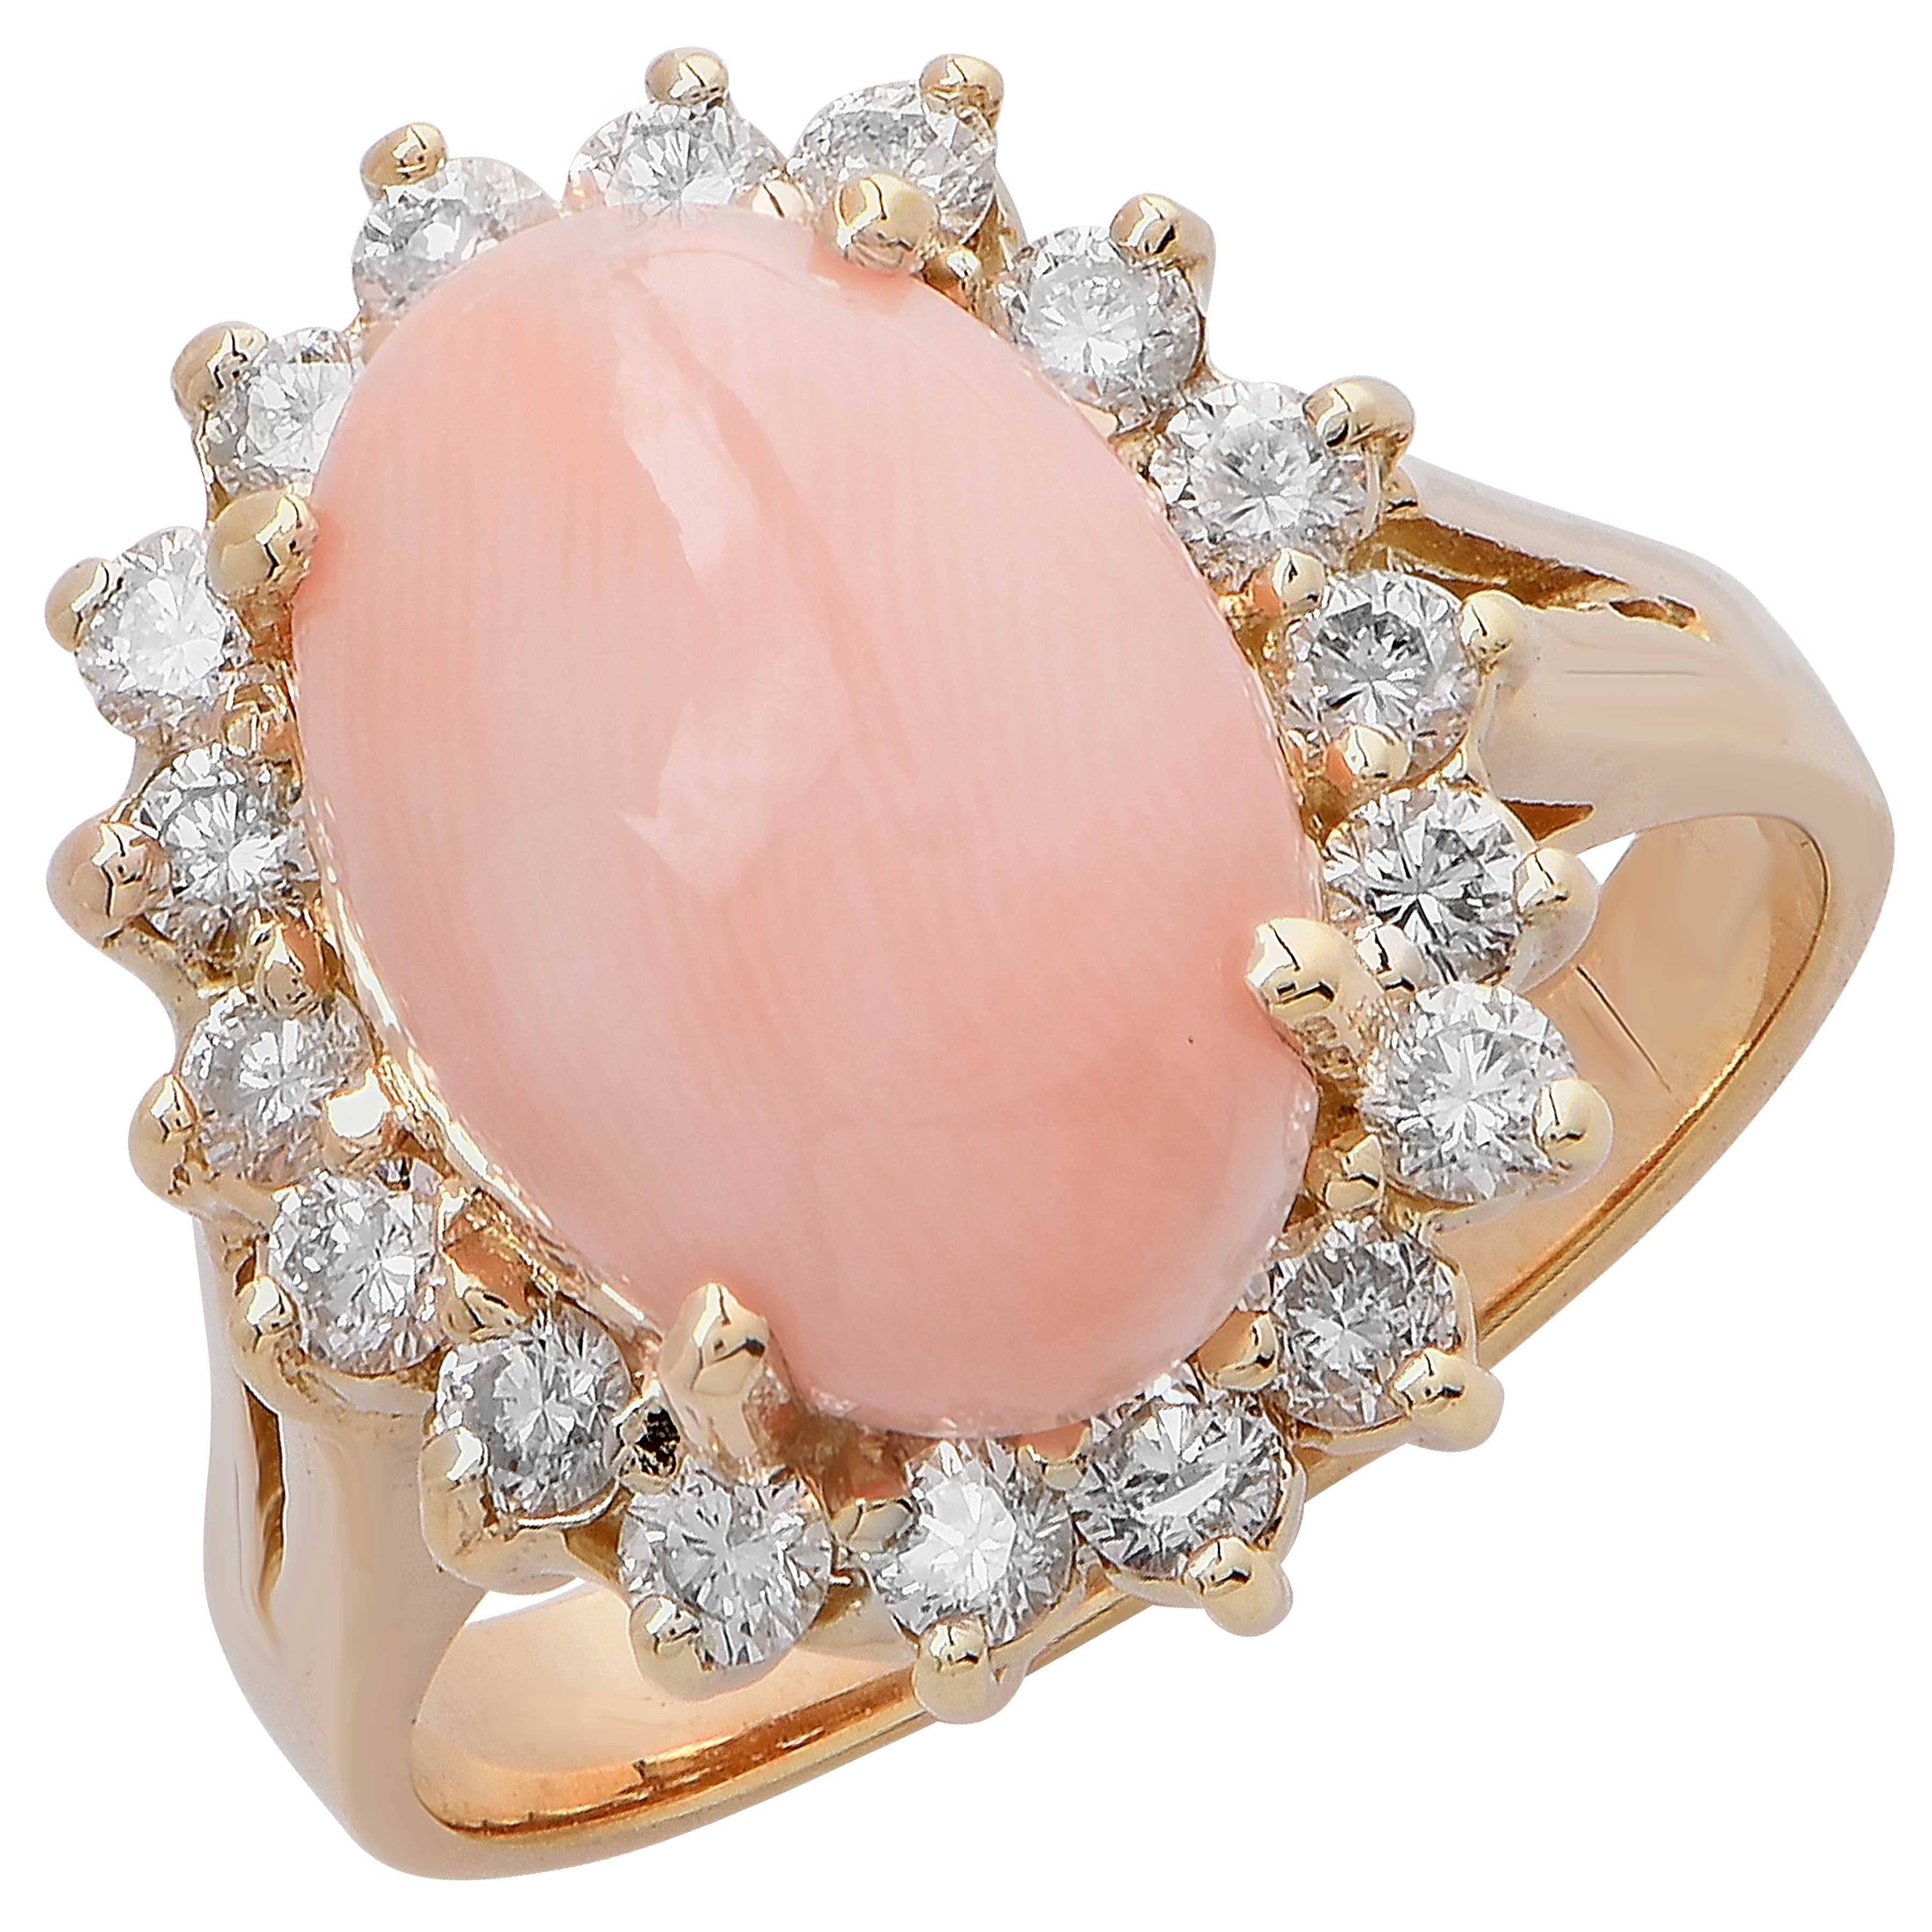 Chantecler Angel Skin Coral and Diamond Ring For Sale at 1stdibs